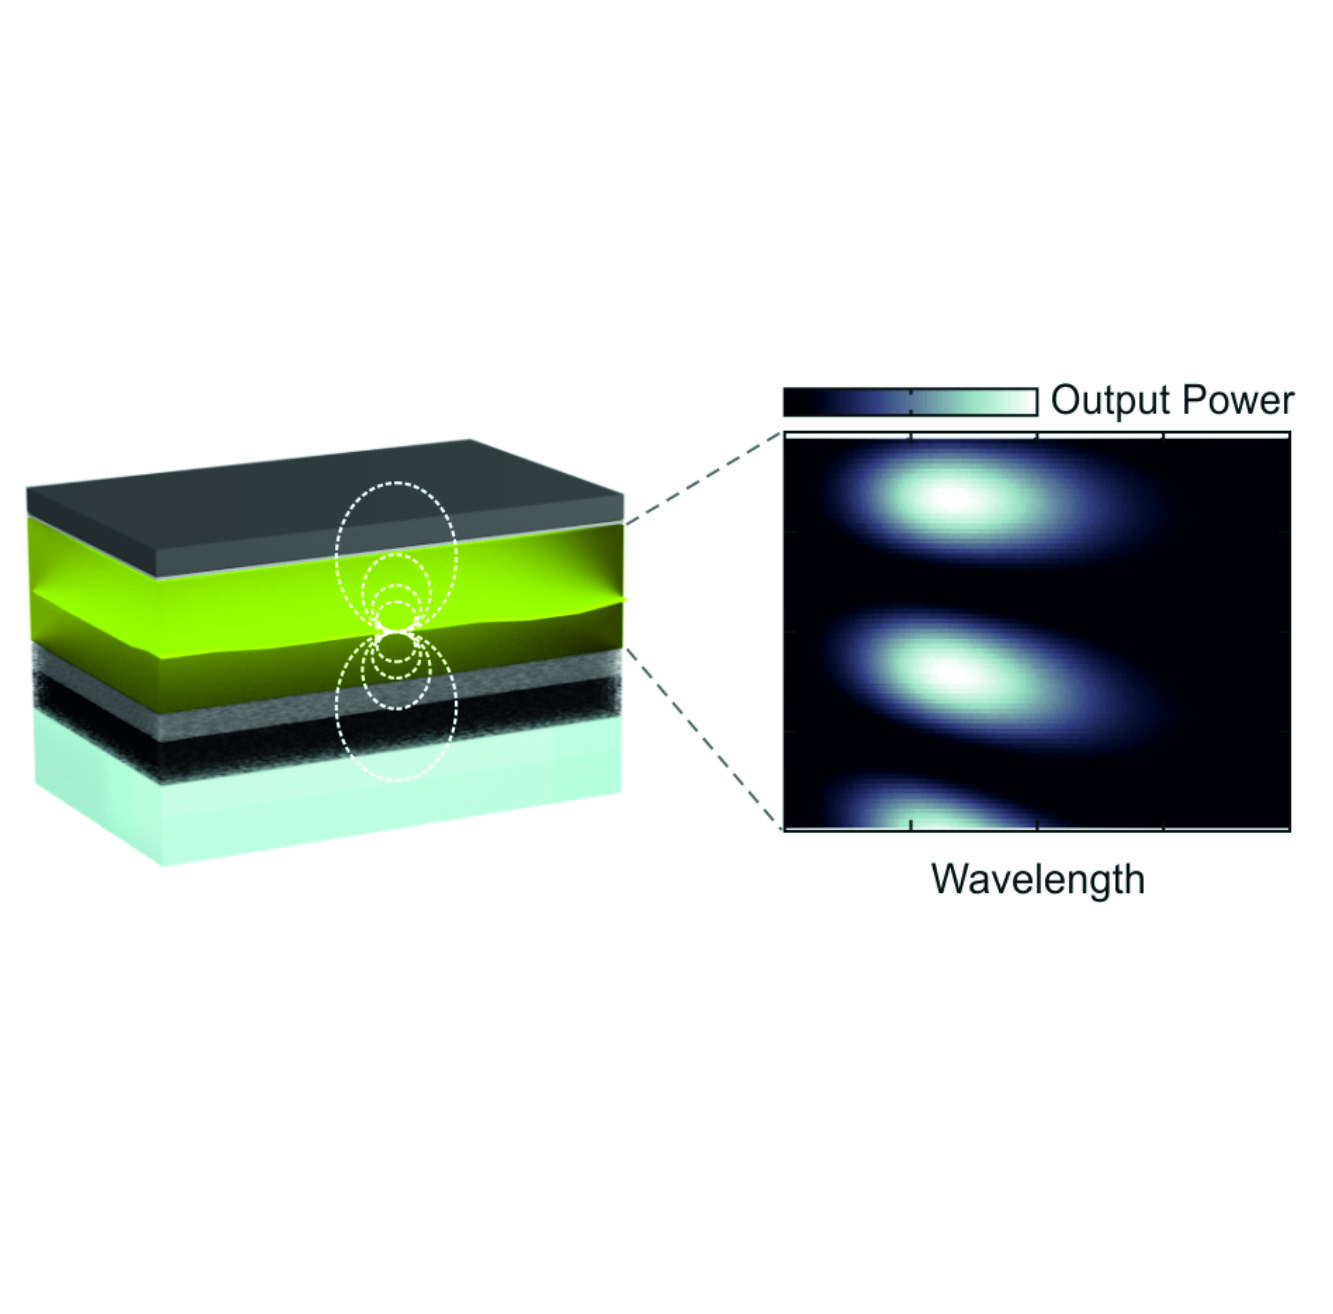 Dipole reorientation and local density of optical states influence the emission of light-emitting electrochemical cells